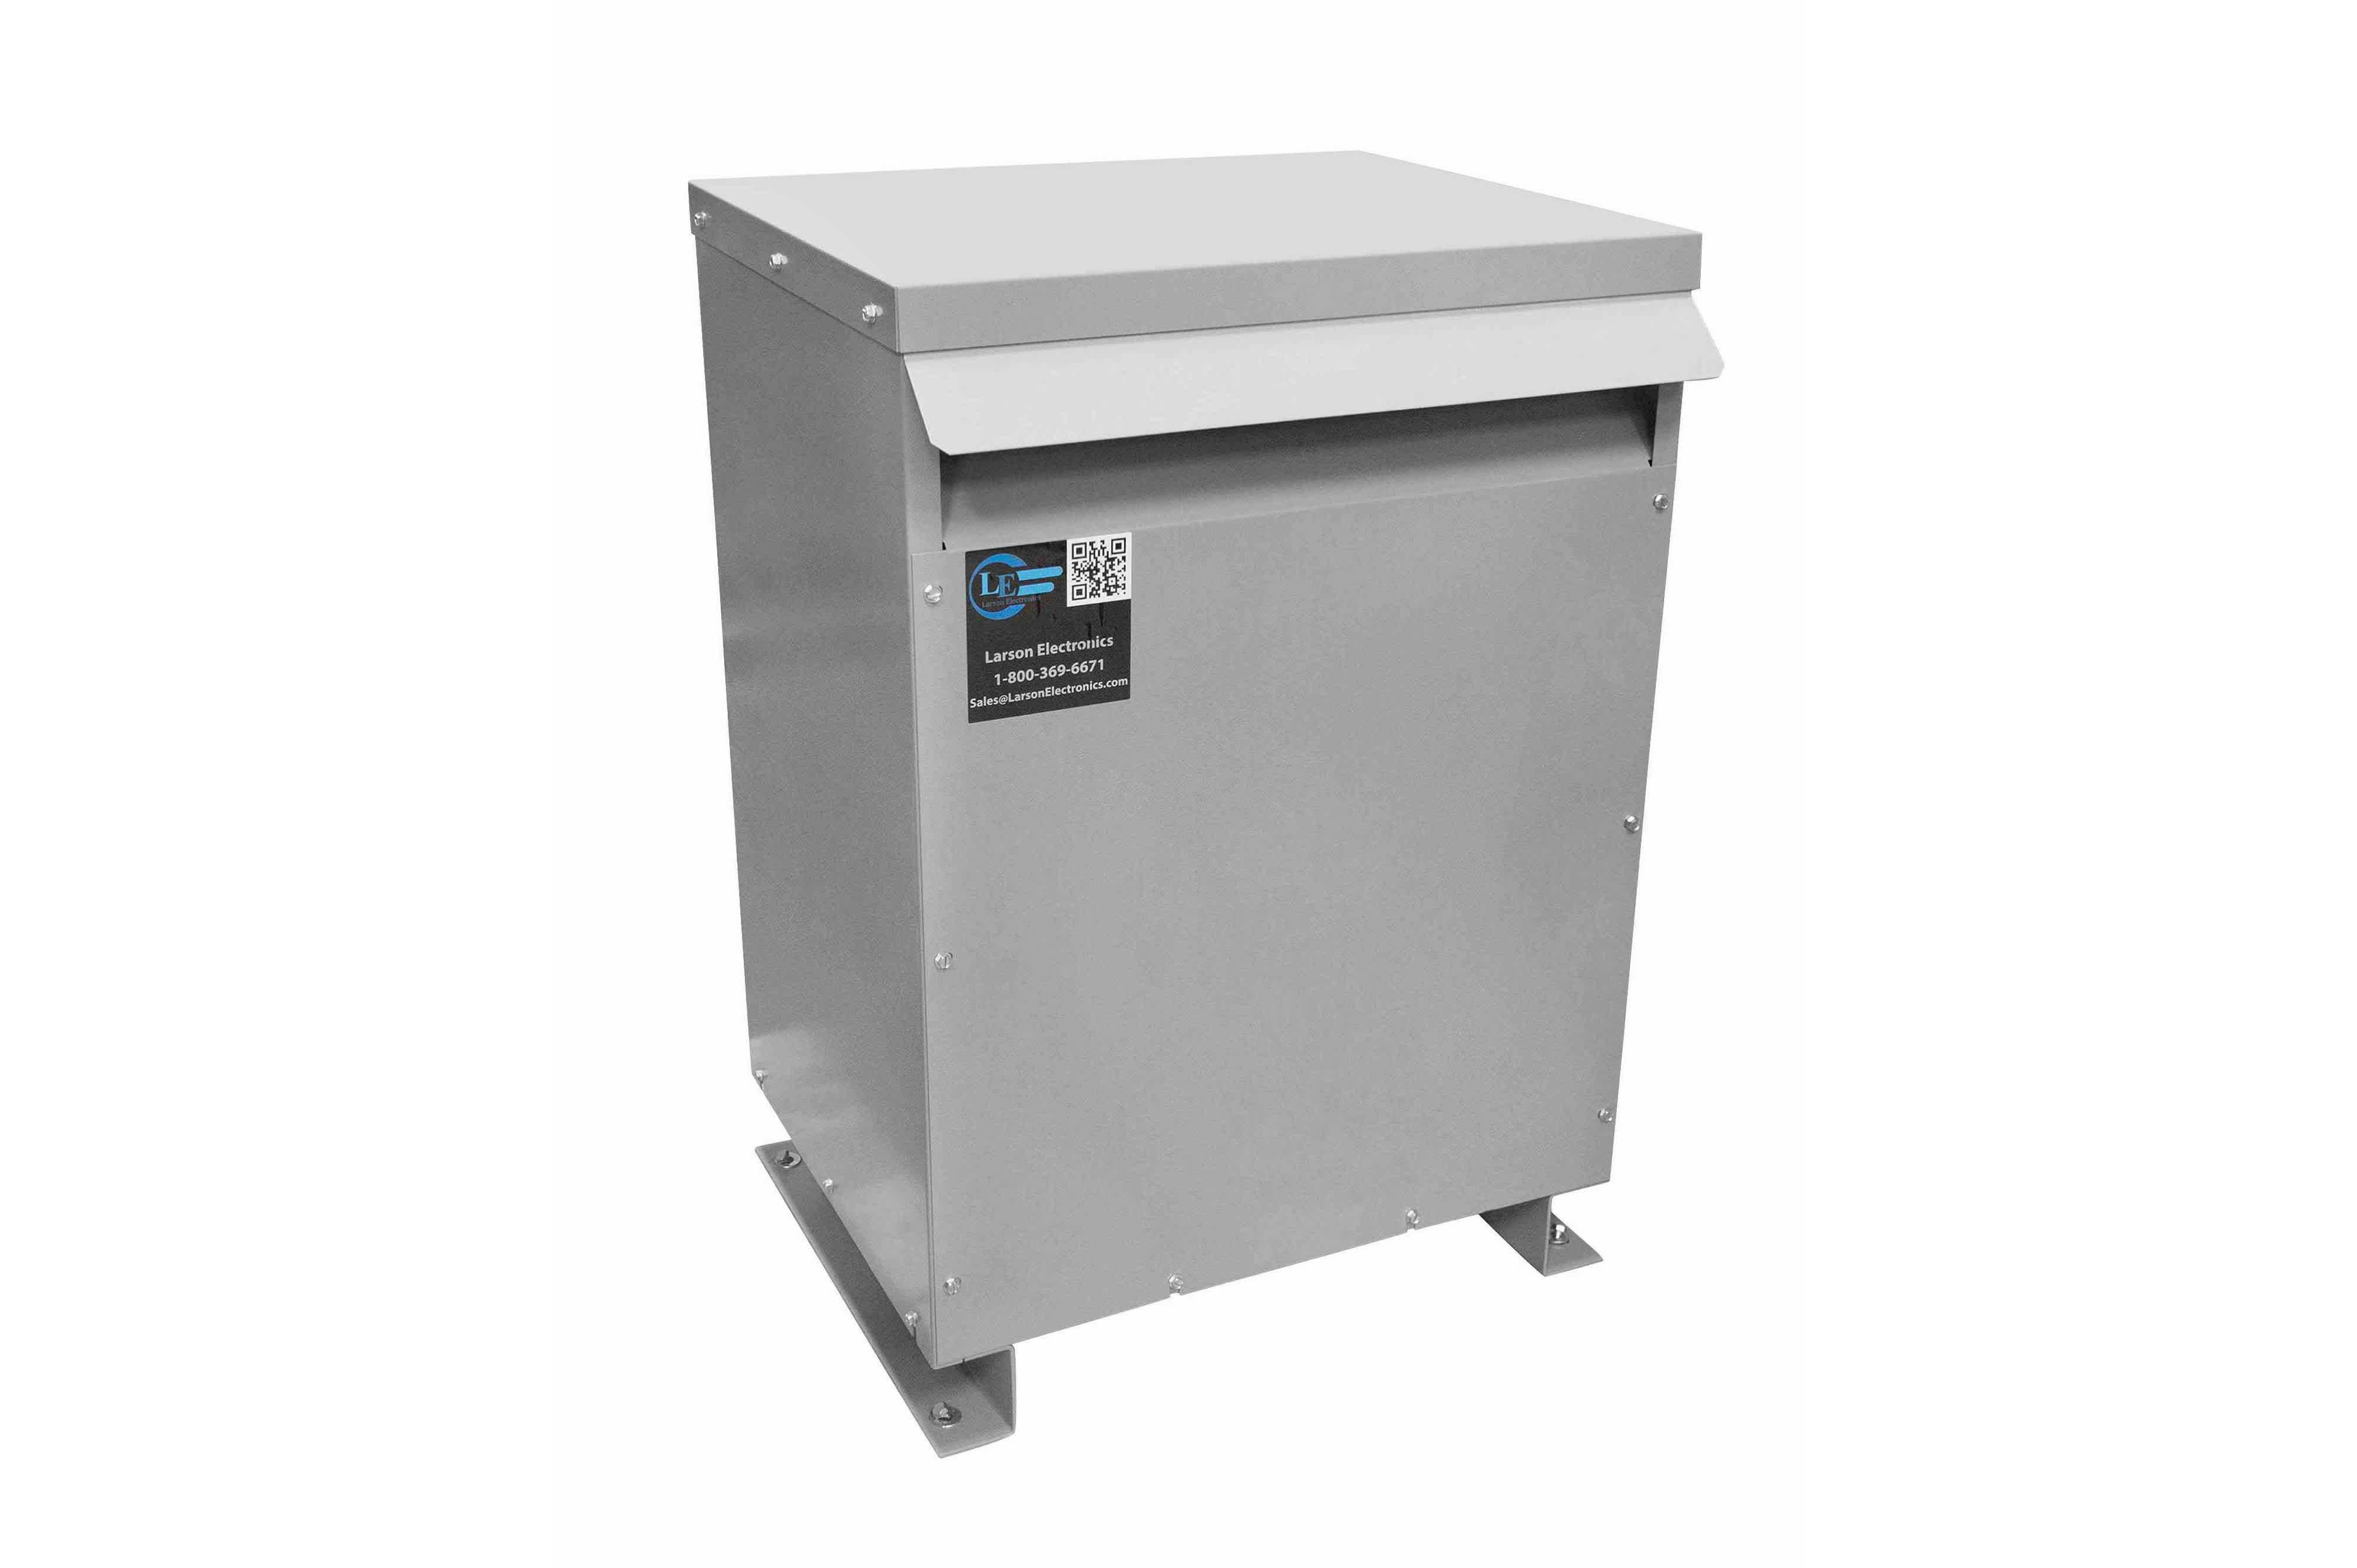 75 kVA 3PH Isolation Transformer, 380V Wye Primary, 208Y/120 Wye-N Secondary, N3R, Ventilated, 60 Hz